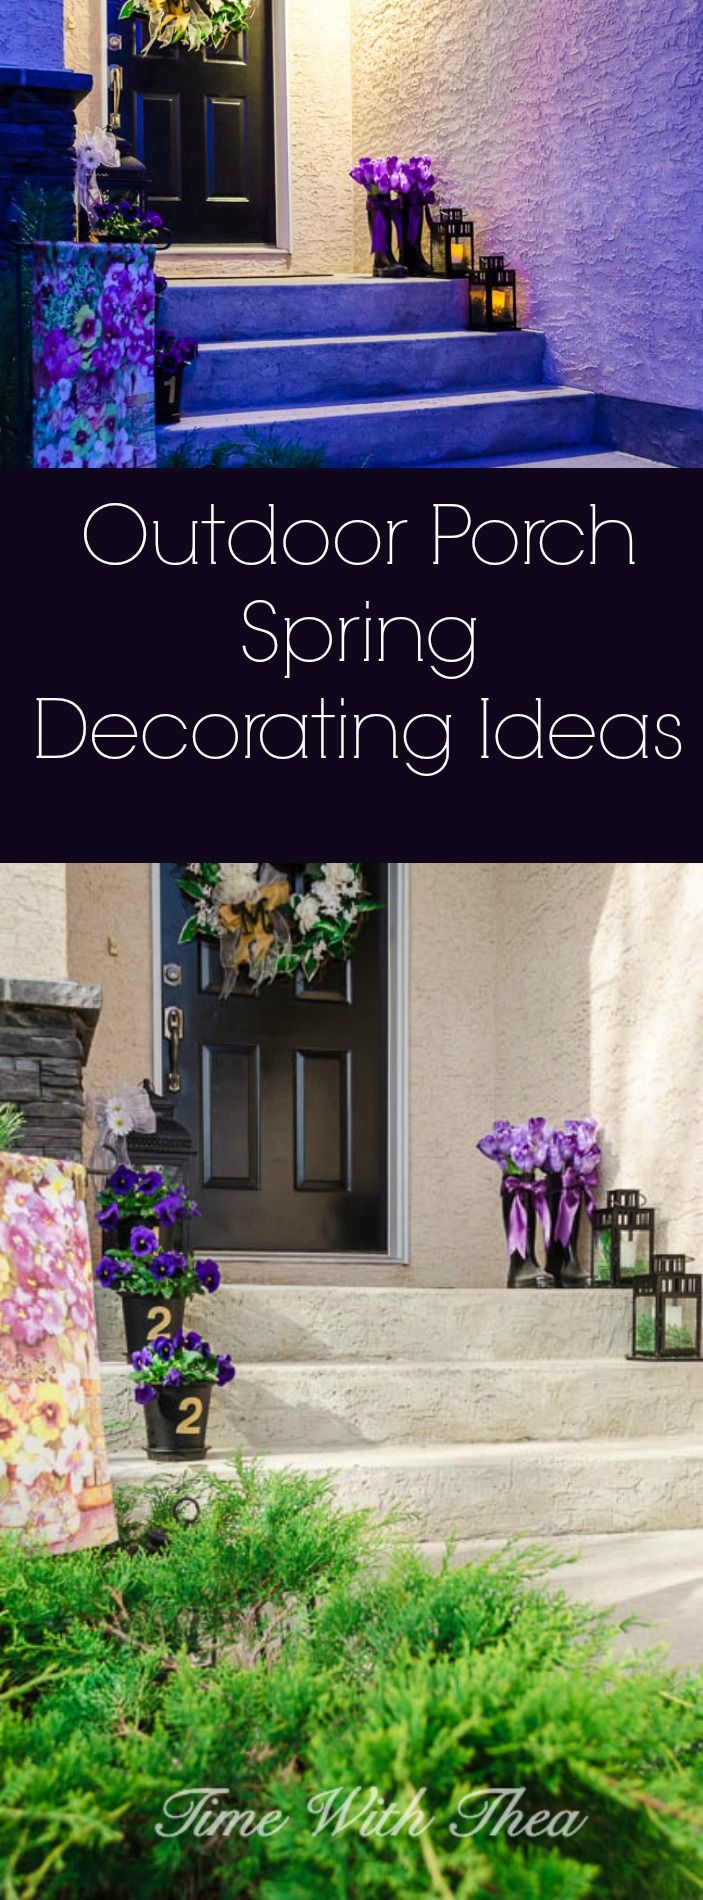 982 best home and garden images on pinterest backyard for Spring yard decorations